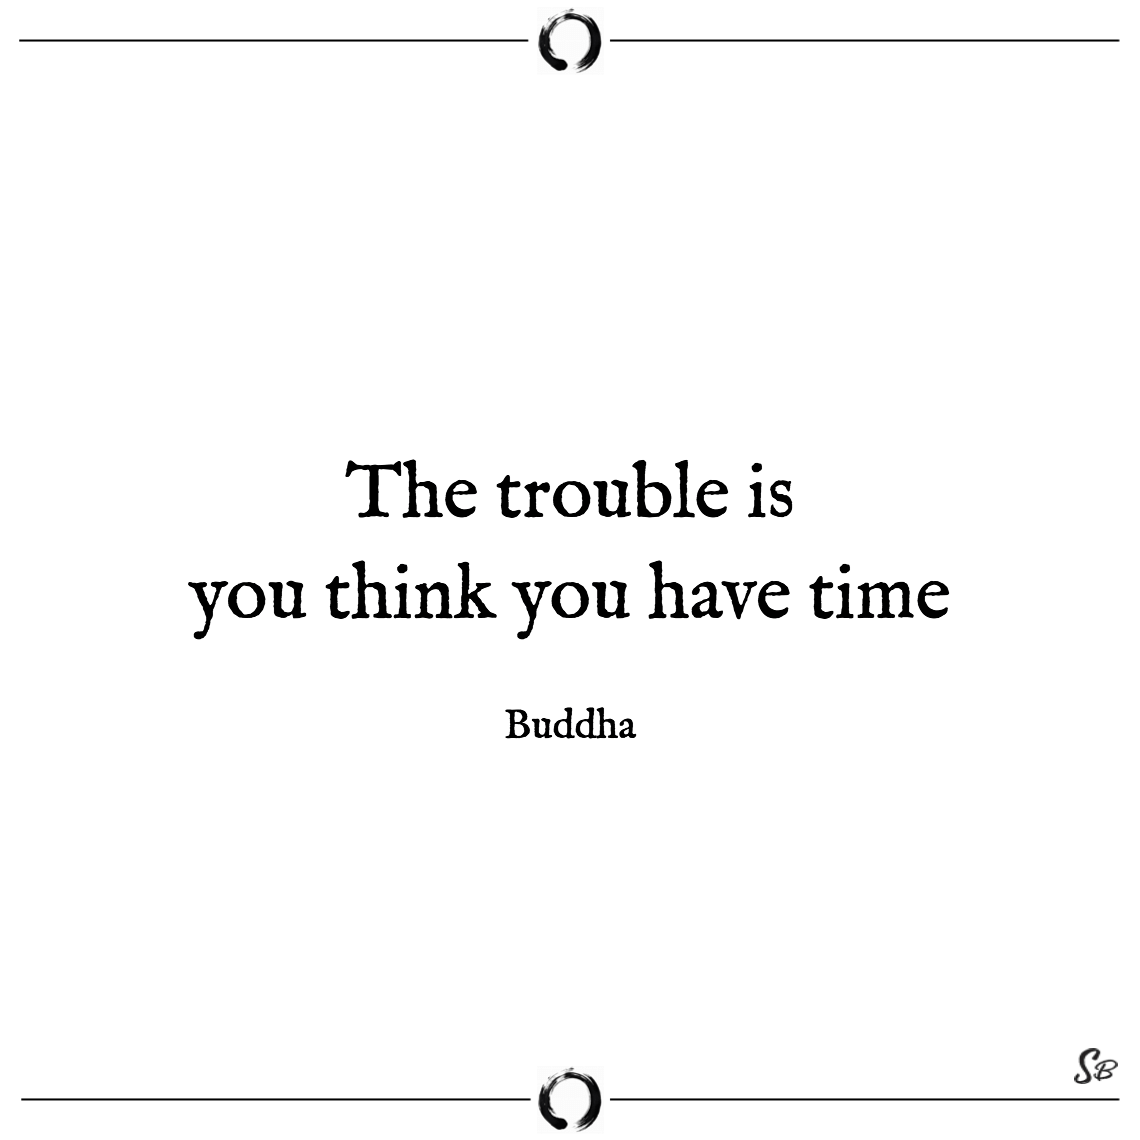 The trouble is you think you have time buddha